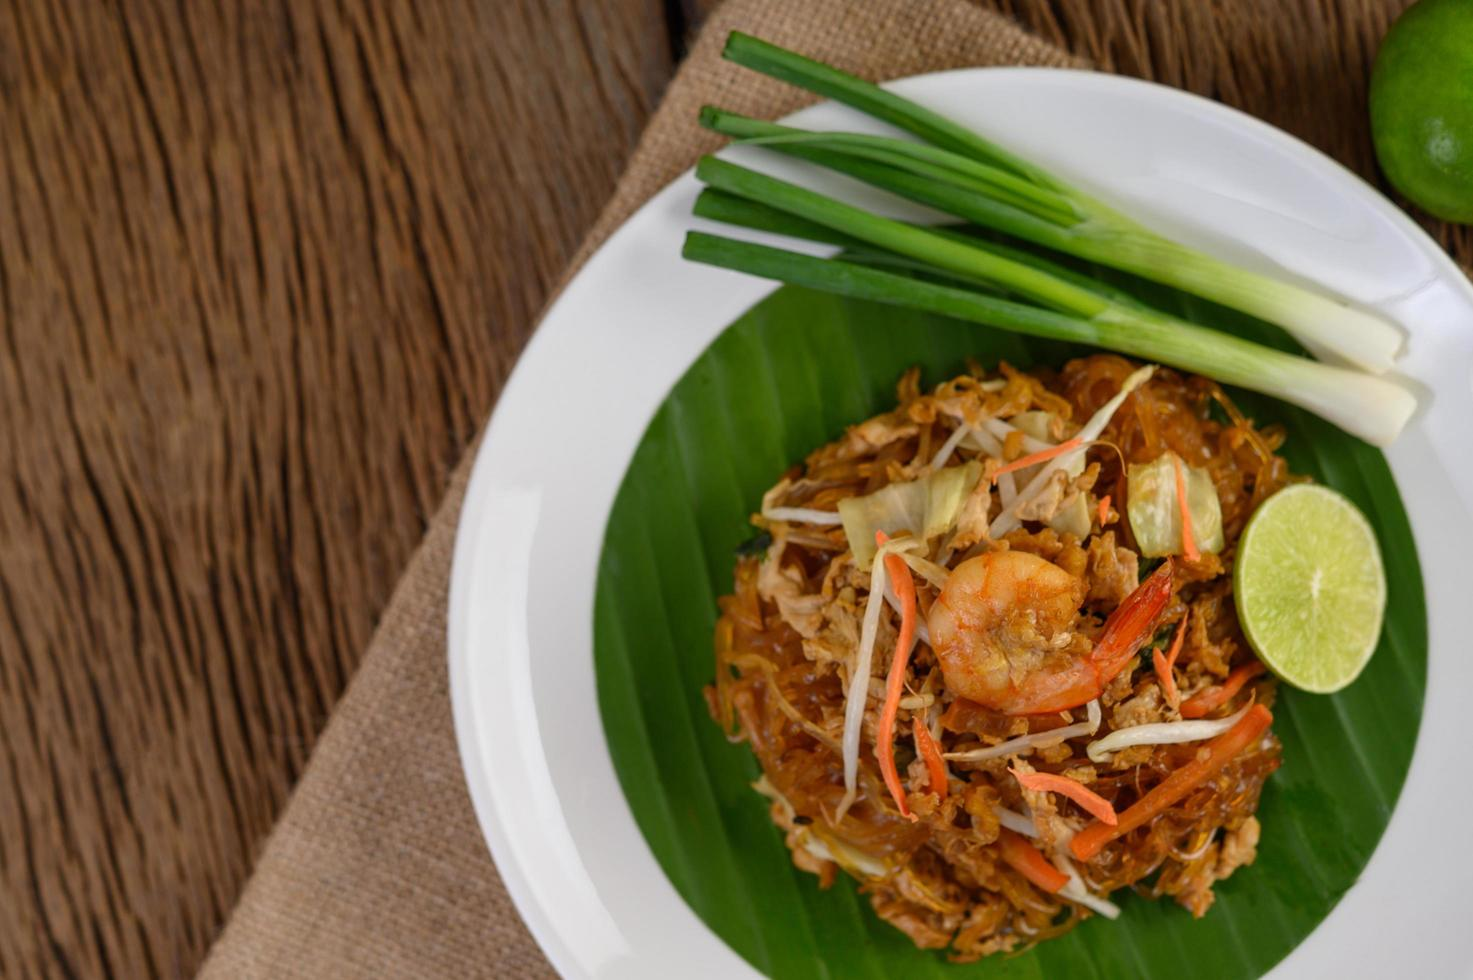 Plate of pad thai shrimp with lime and eggs photo